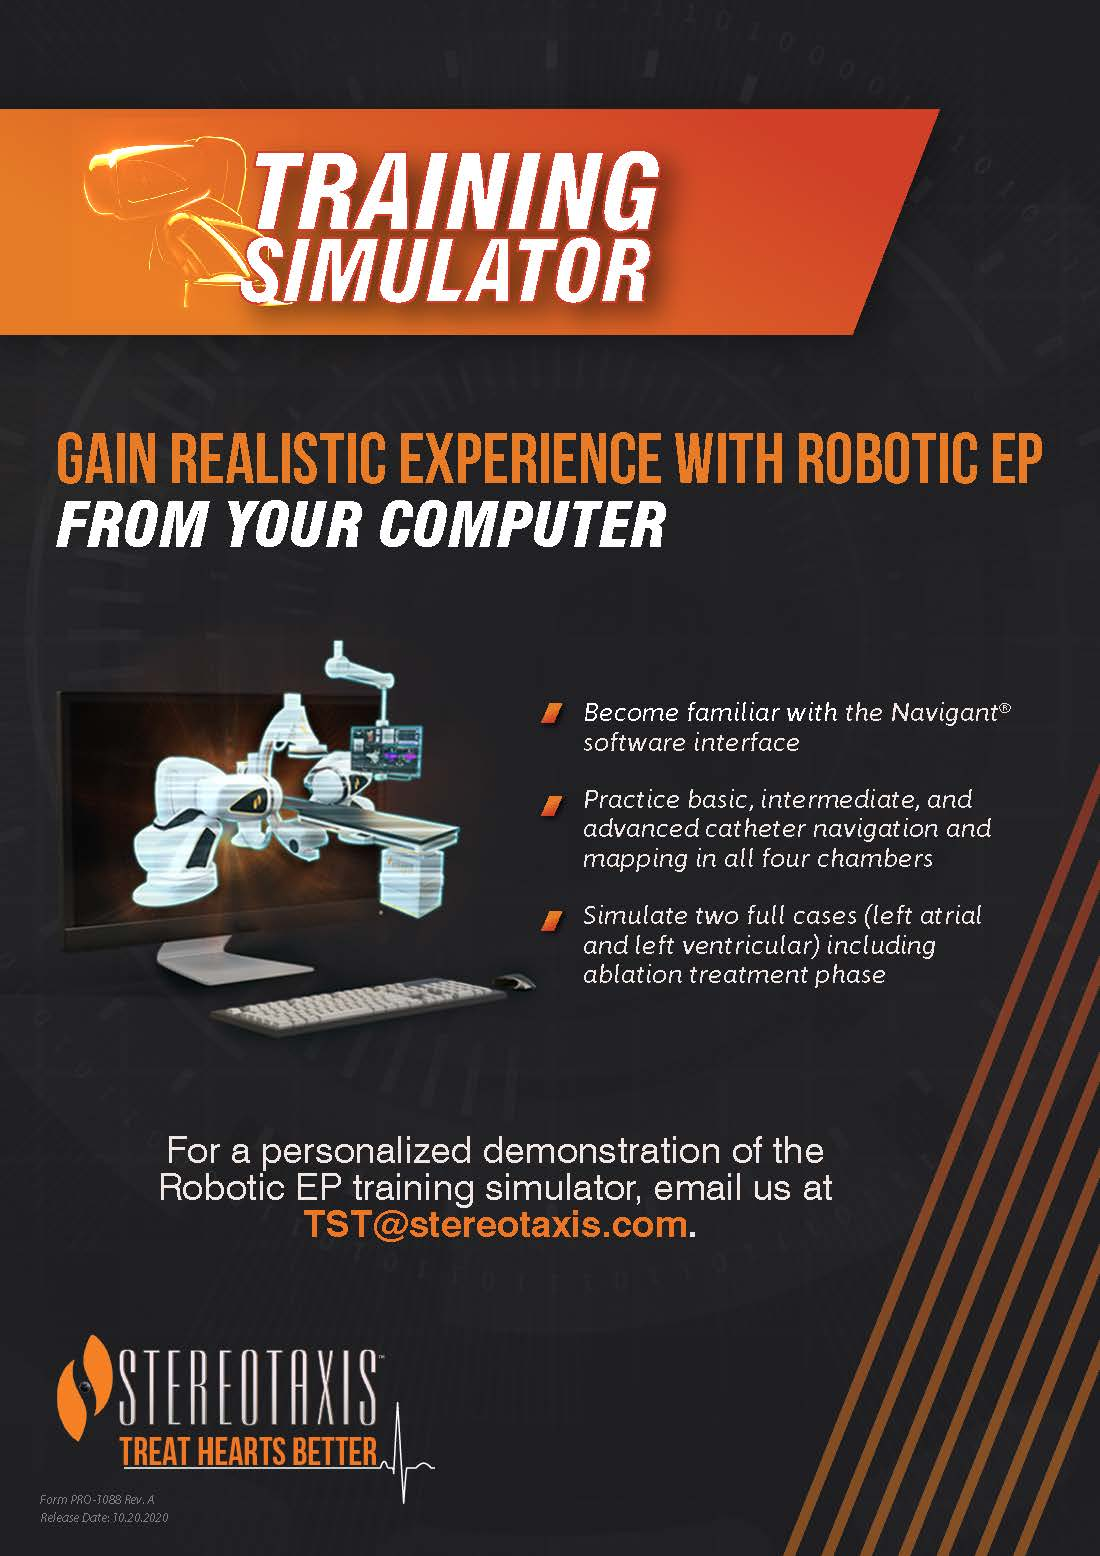 Stereotaxis_Training Simulator Flyer